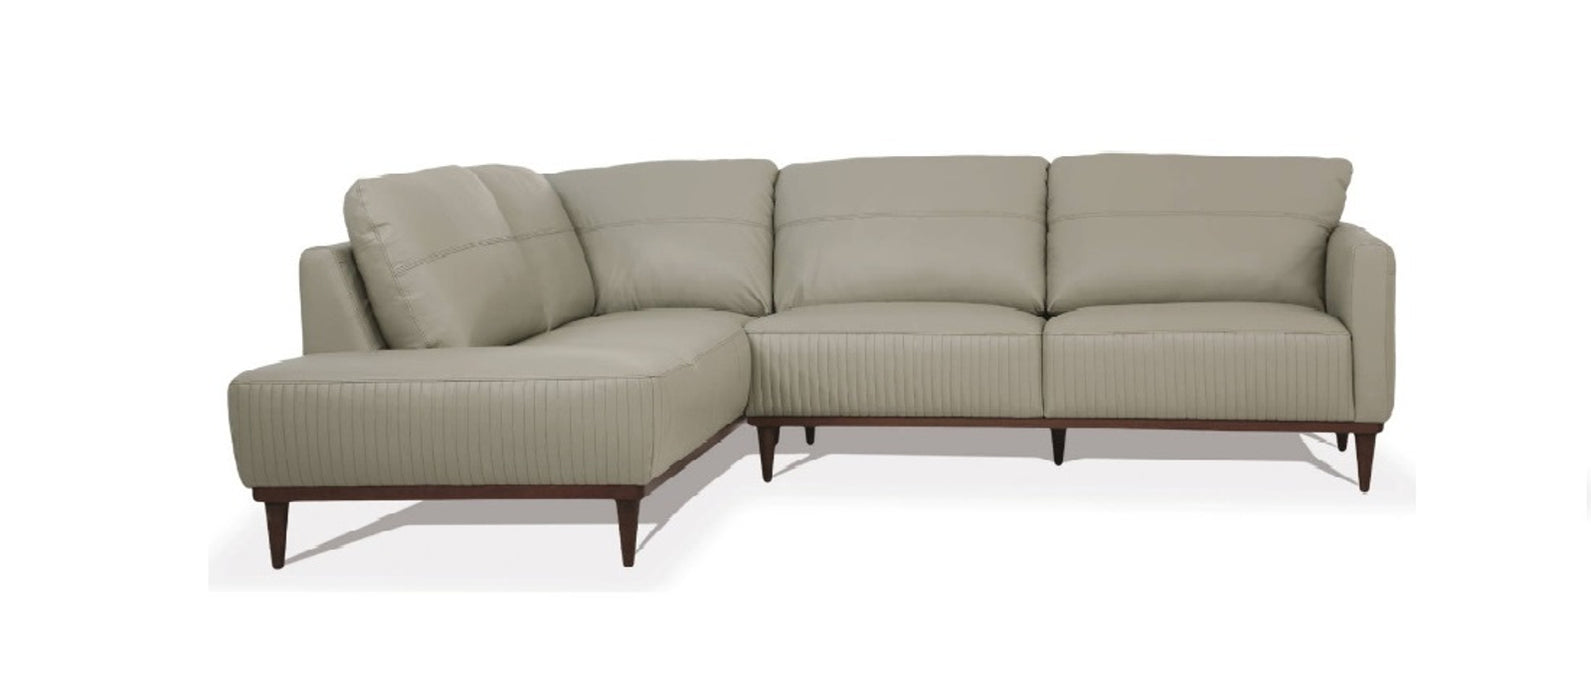 Acme Tampa Sectional Sofa in Airy Green 54995 image